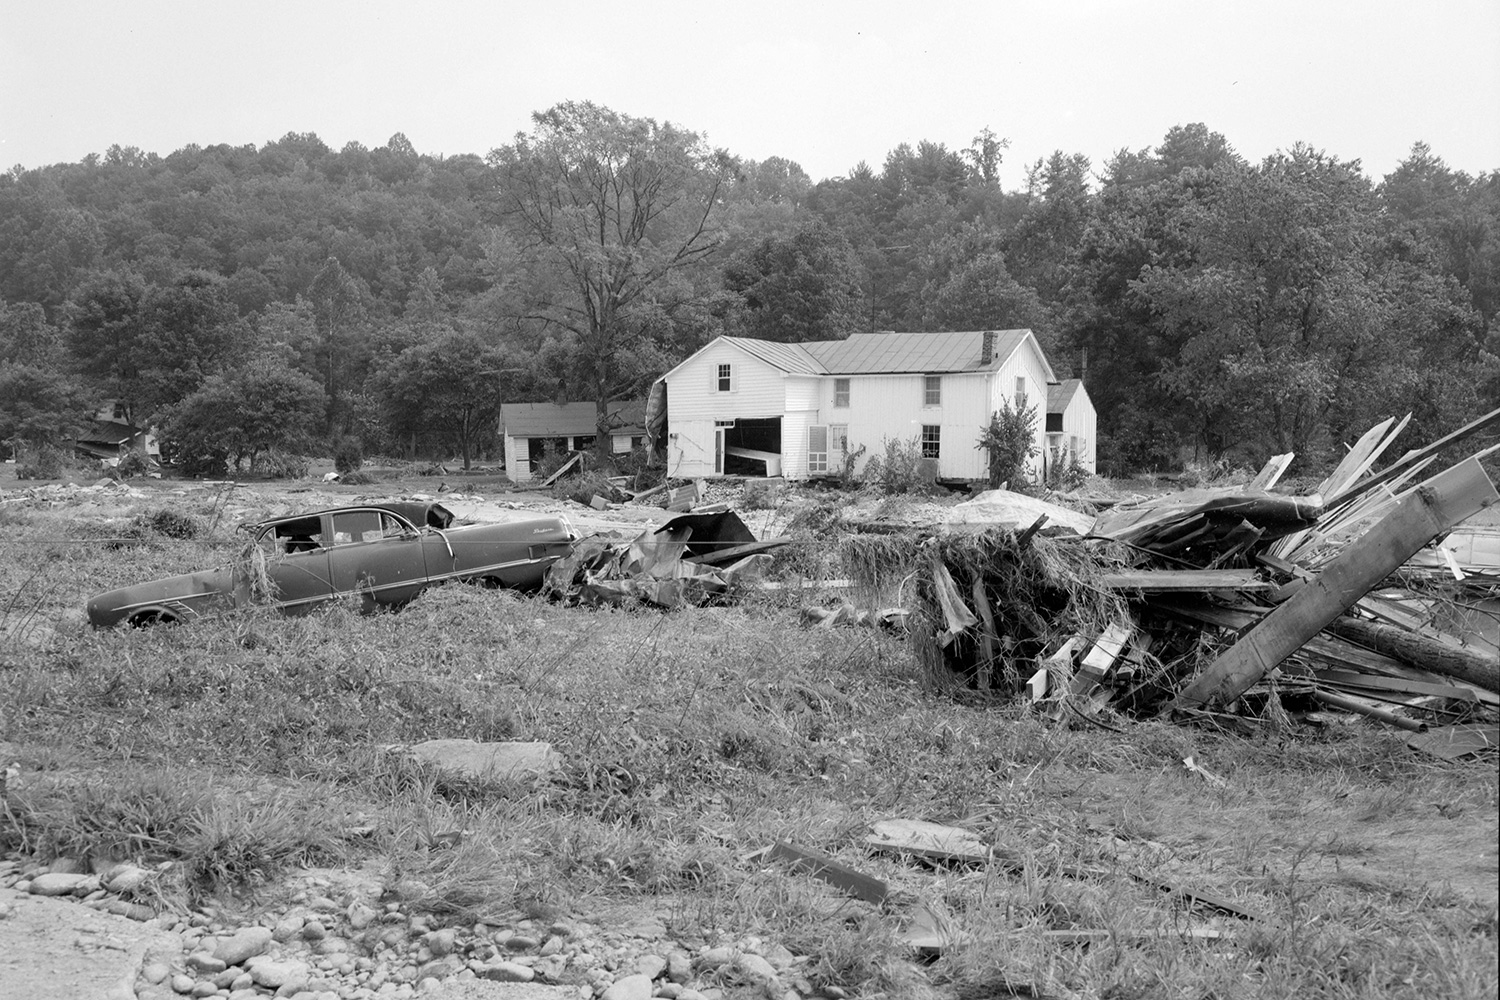 Hurricane Camille caused catastrophic damages to property, automobiles and homes. This photo was taken on Rt. 56 in Massie's Mill, Nelson County.